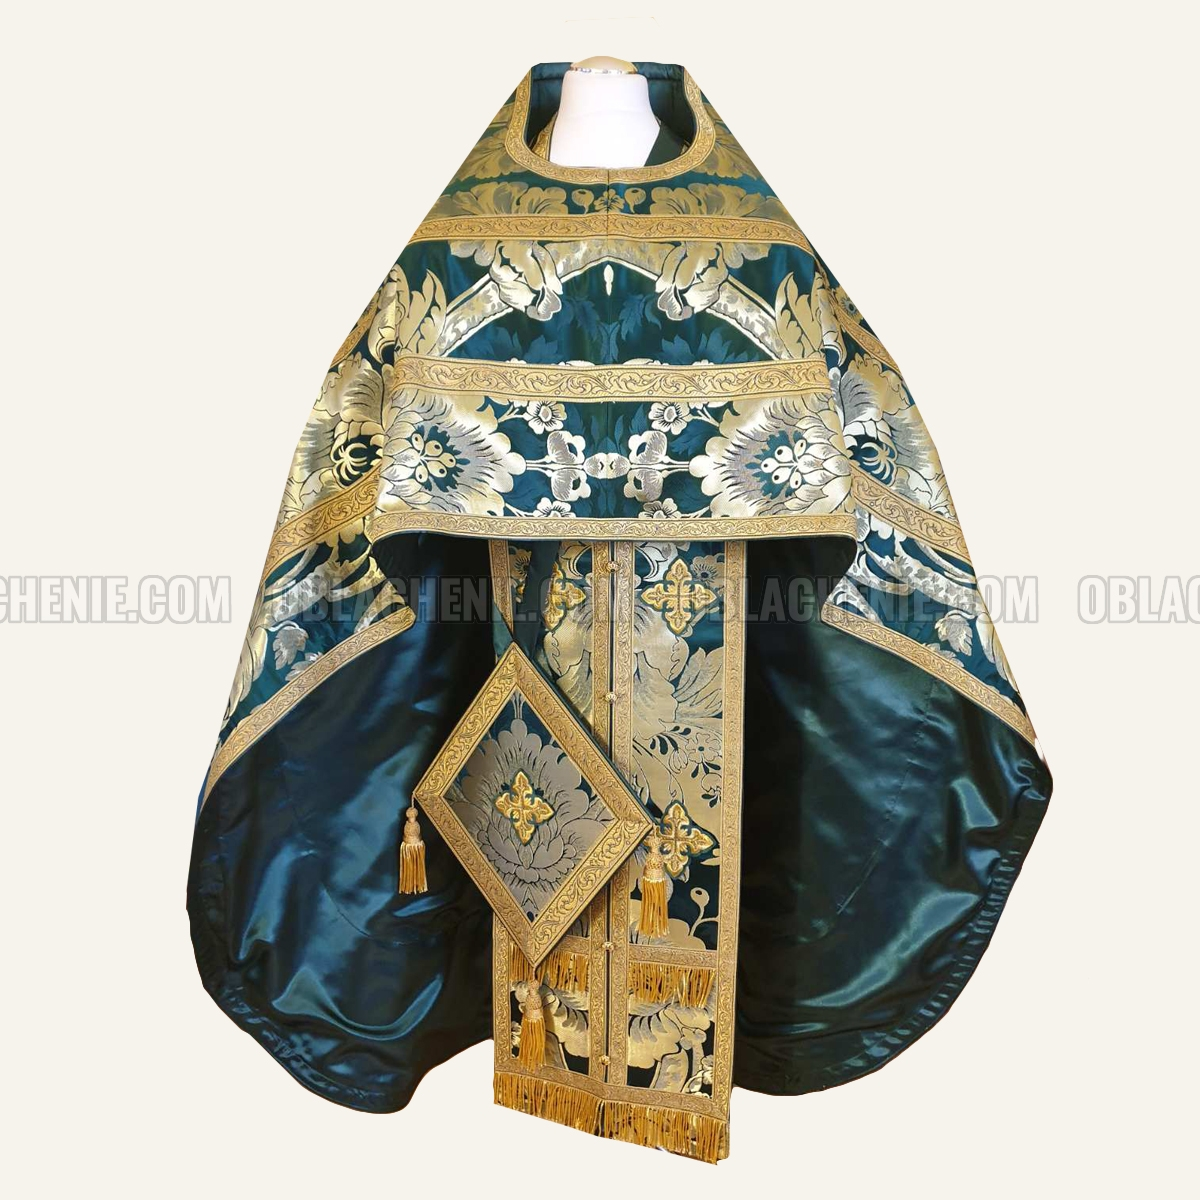 PRIEST'S VESTMENTS 10981